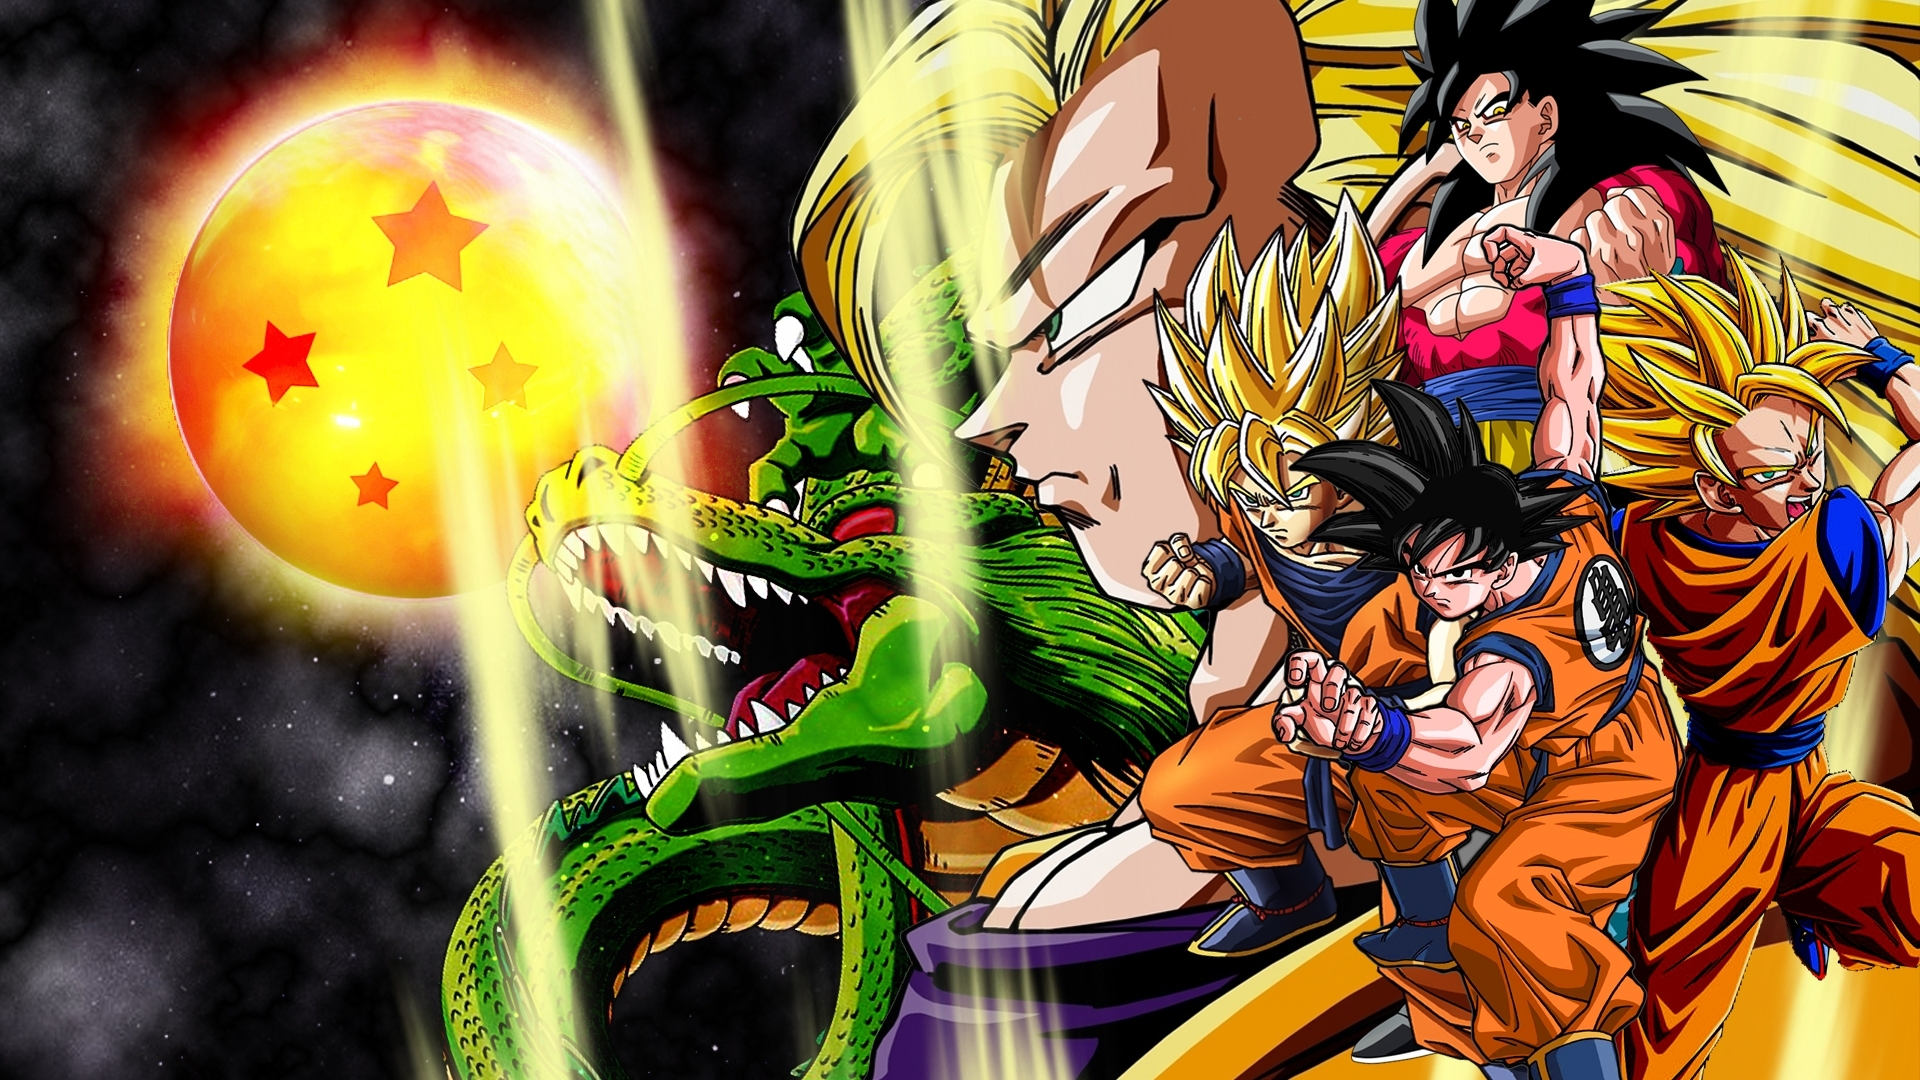 dragon ball z wallpaper 34084 1920x1080 px ~ hdwallsource